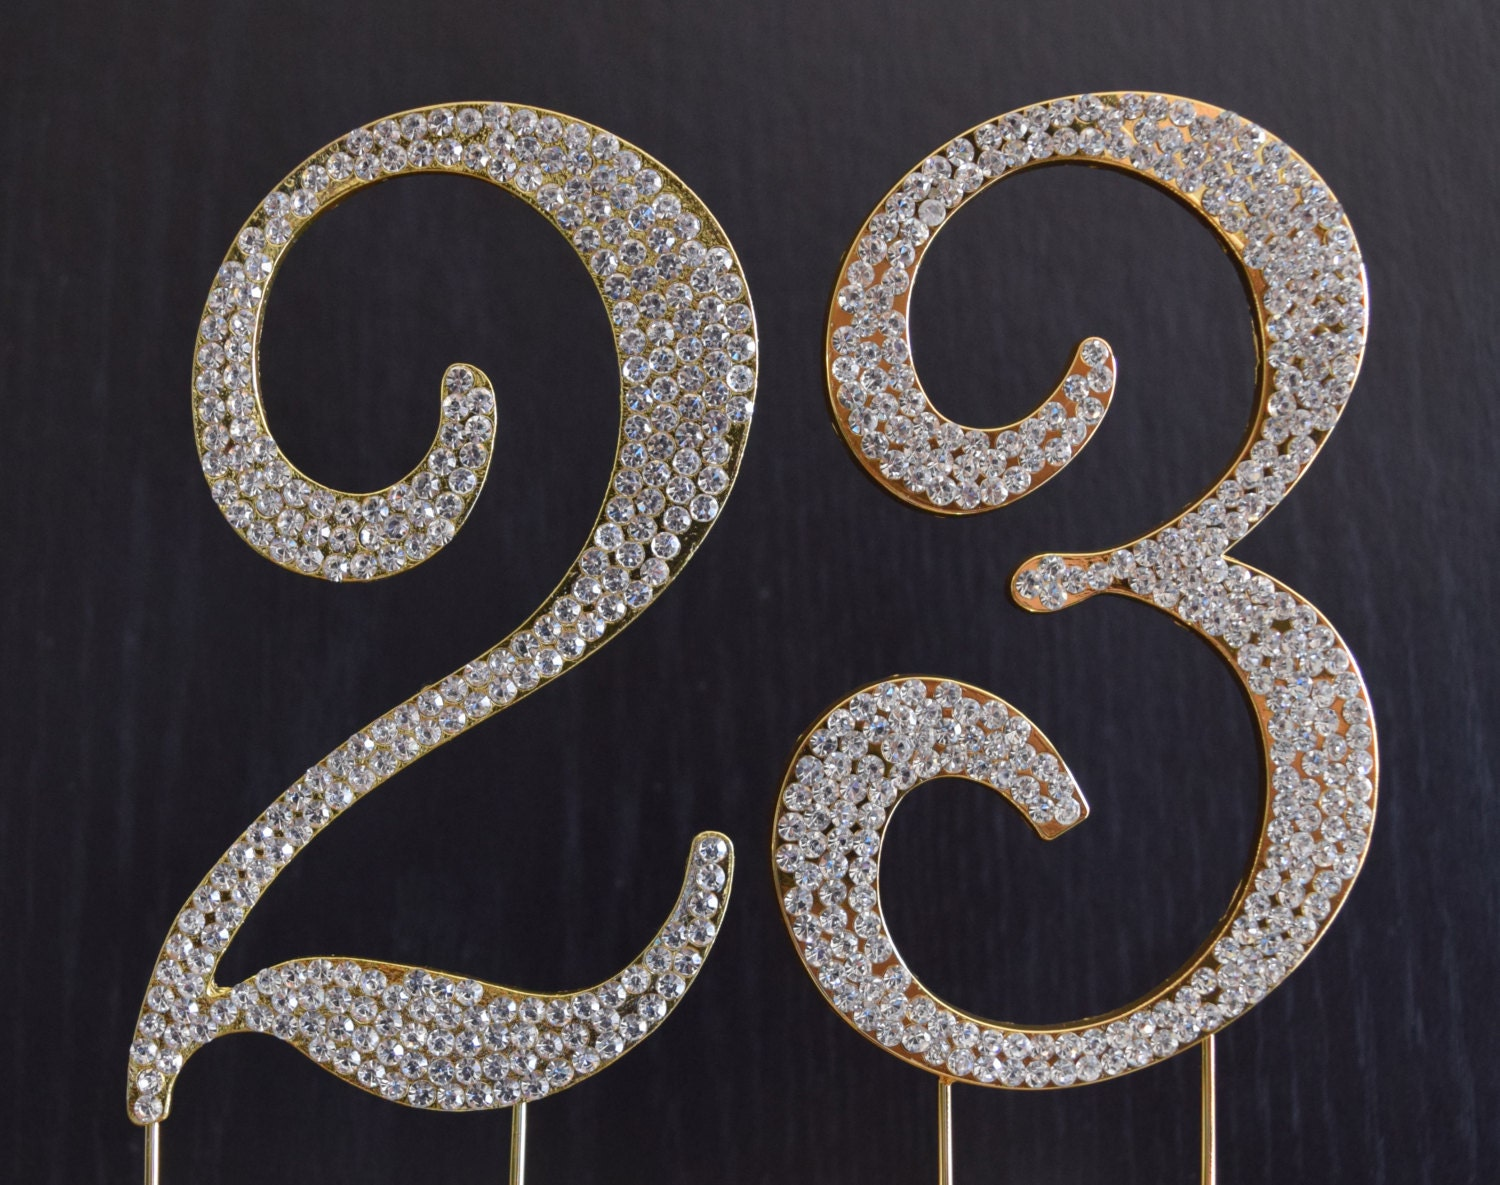 23rd Wedding Anniversary Gift Ideas: Rhinestone Gold NUMBER 23 Cake Topper 23rd Birthday Party